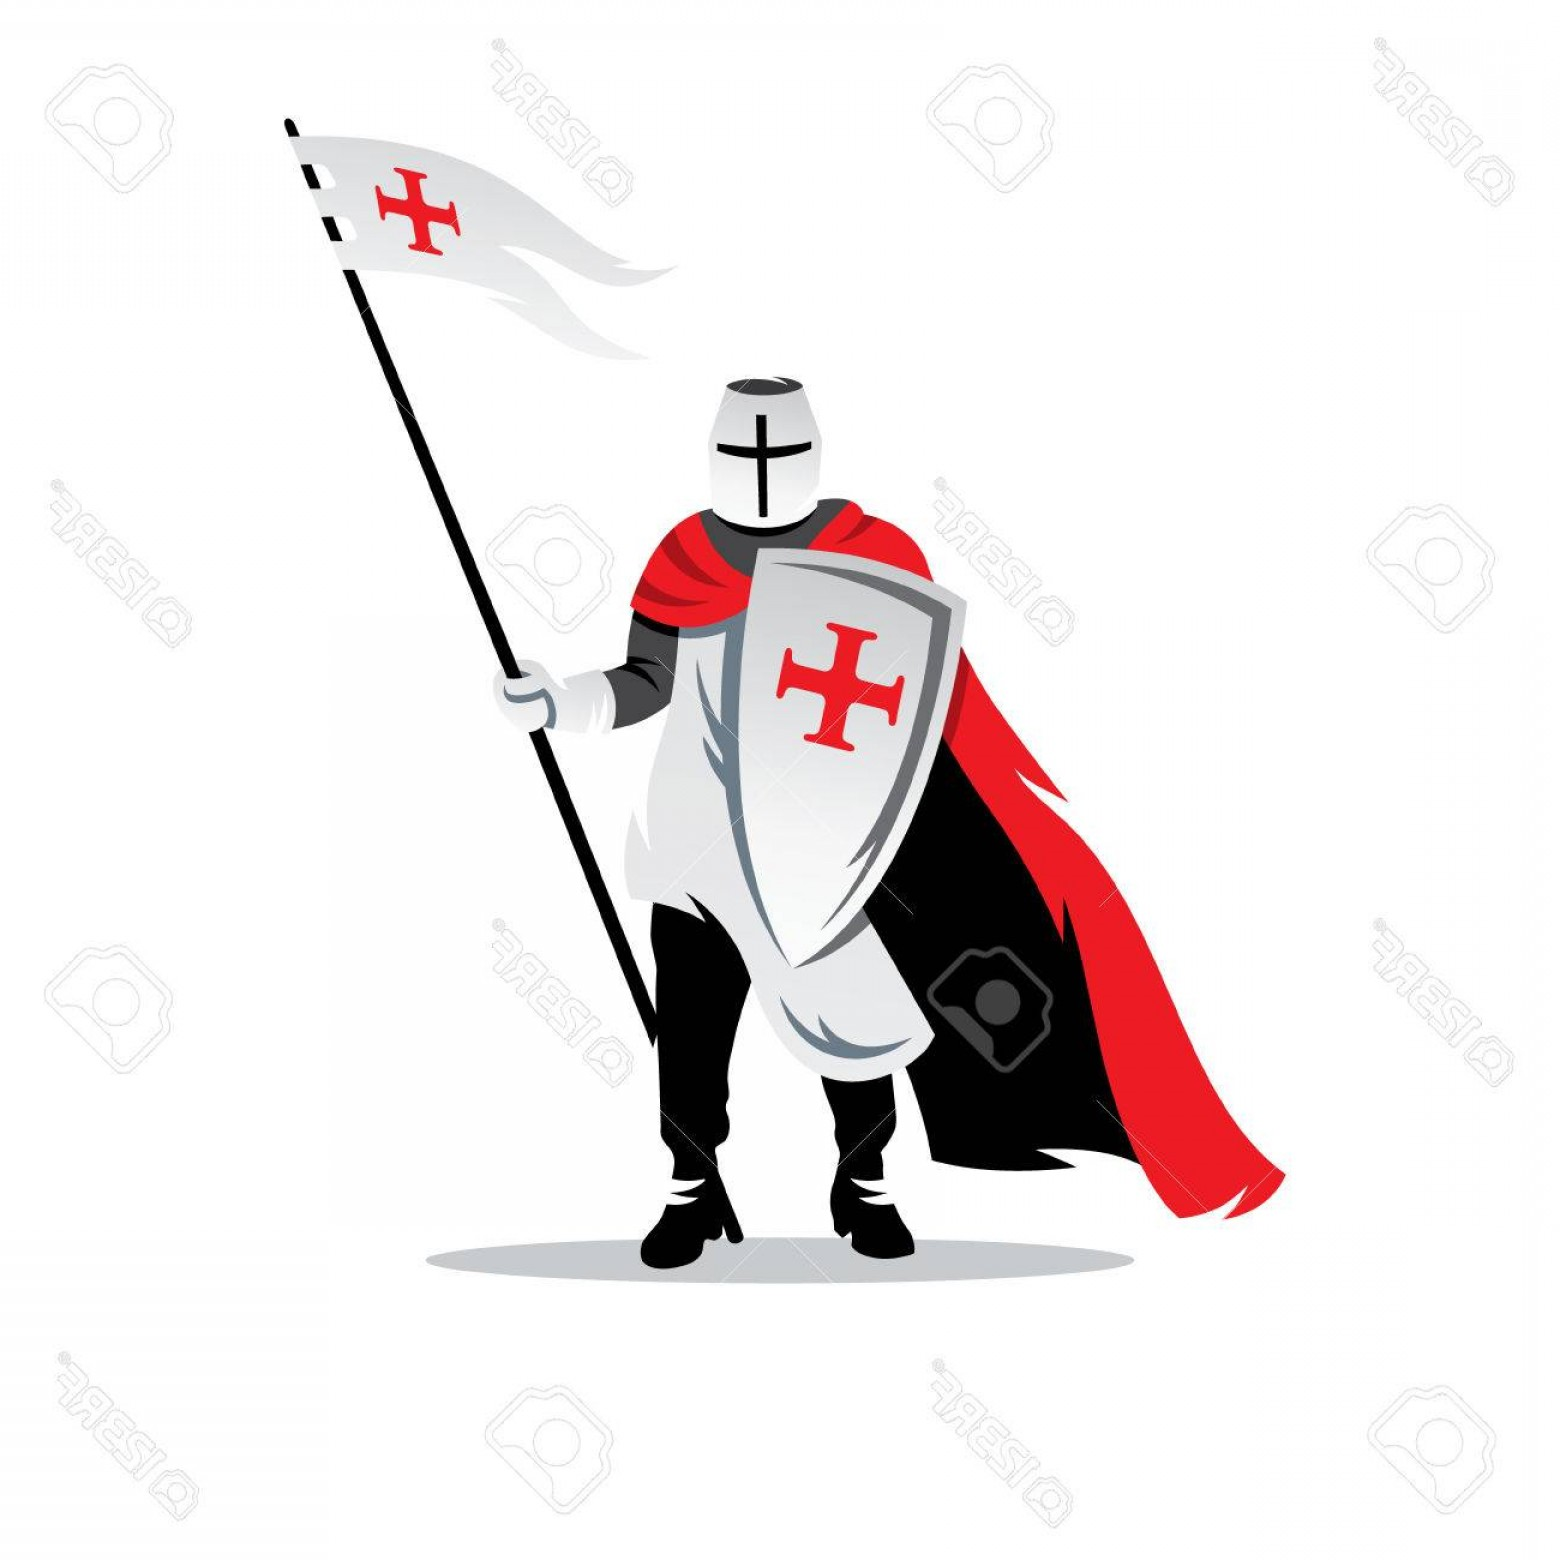 1560x1560 Photostock Vector Crusader Helmet With Spear And Shield Isolated